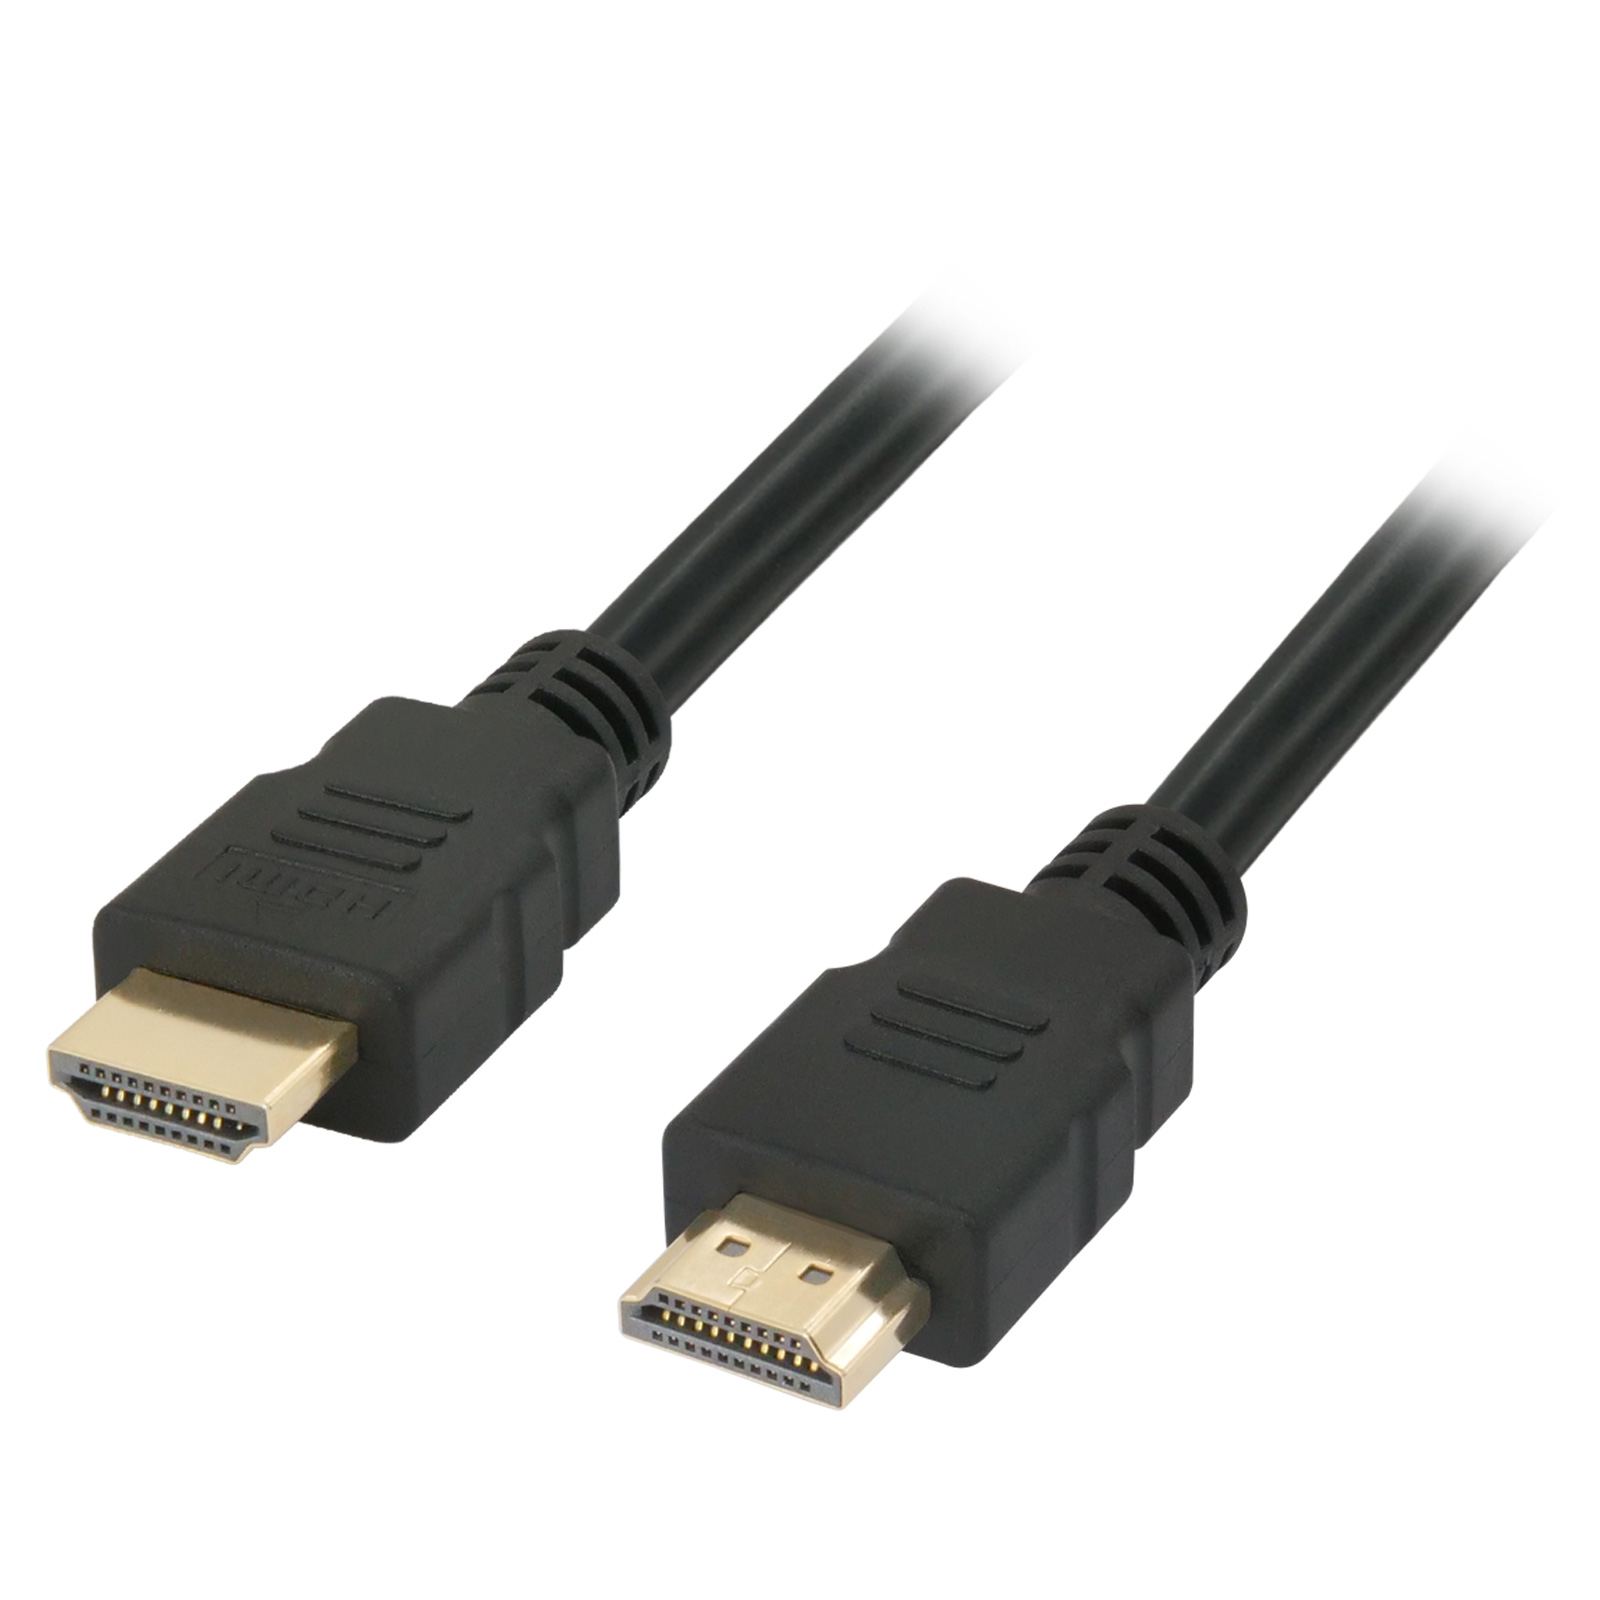 50ft Cl3 High Speed Hdmi Cable With Ethernet And Ferrite